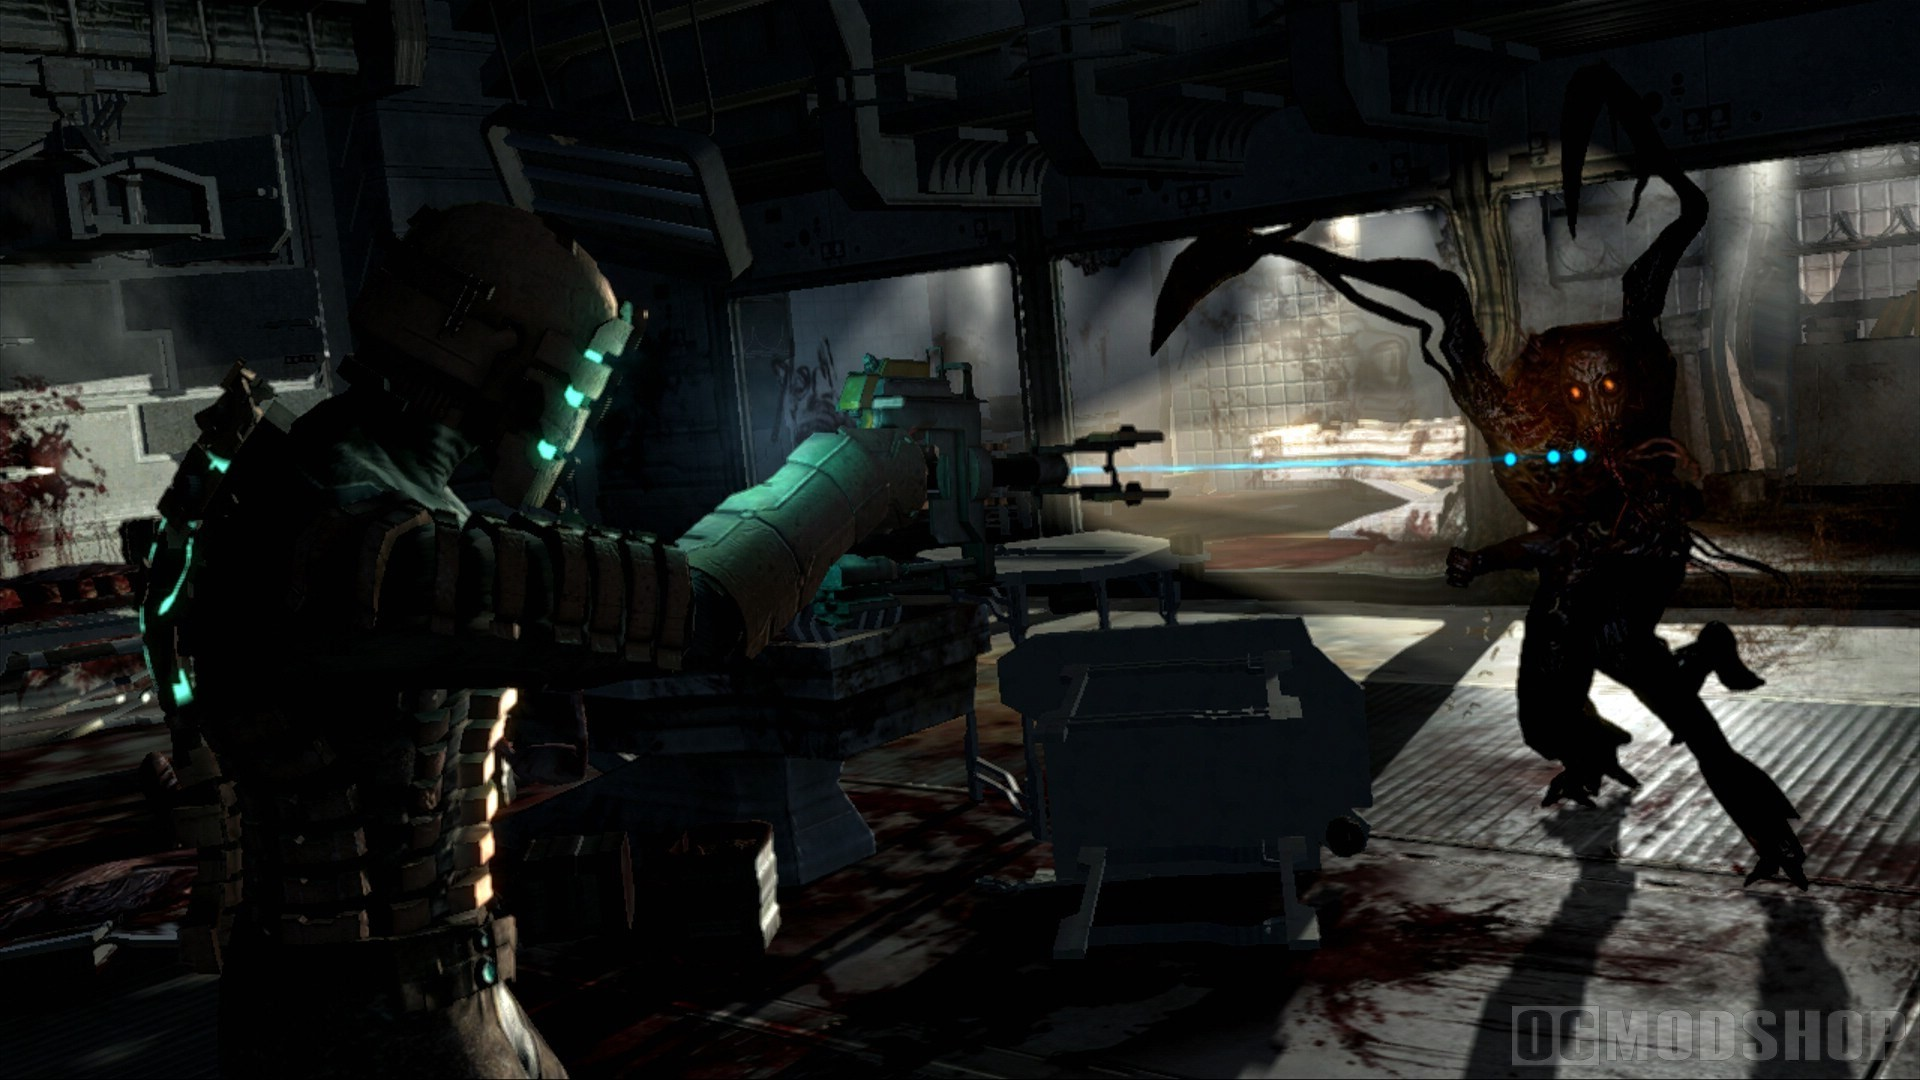 1920x1080 dead space screensavers and backgrounds free